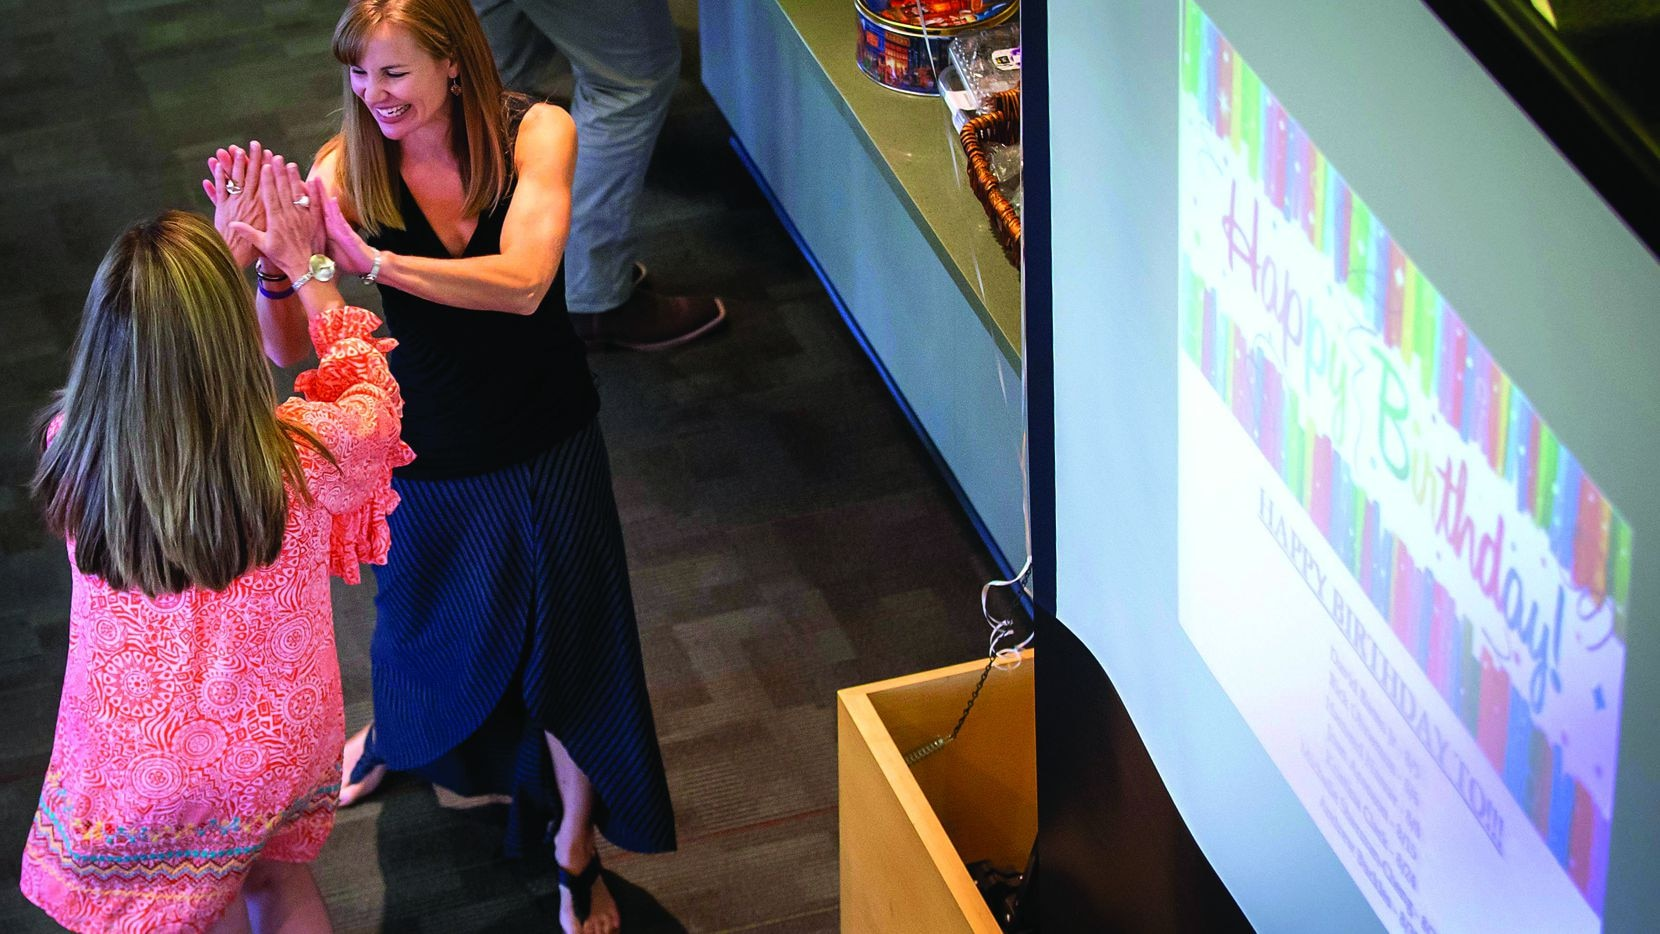 Lindsay Hendricks (facing) high fived a co-worker during a party celebrating employee birthdays at Systemware in 2018.